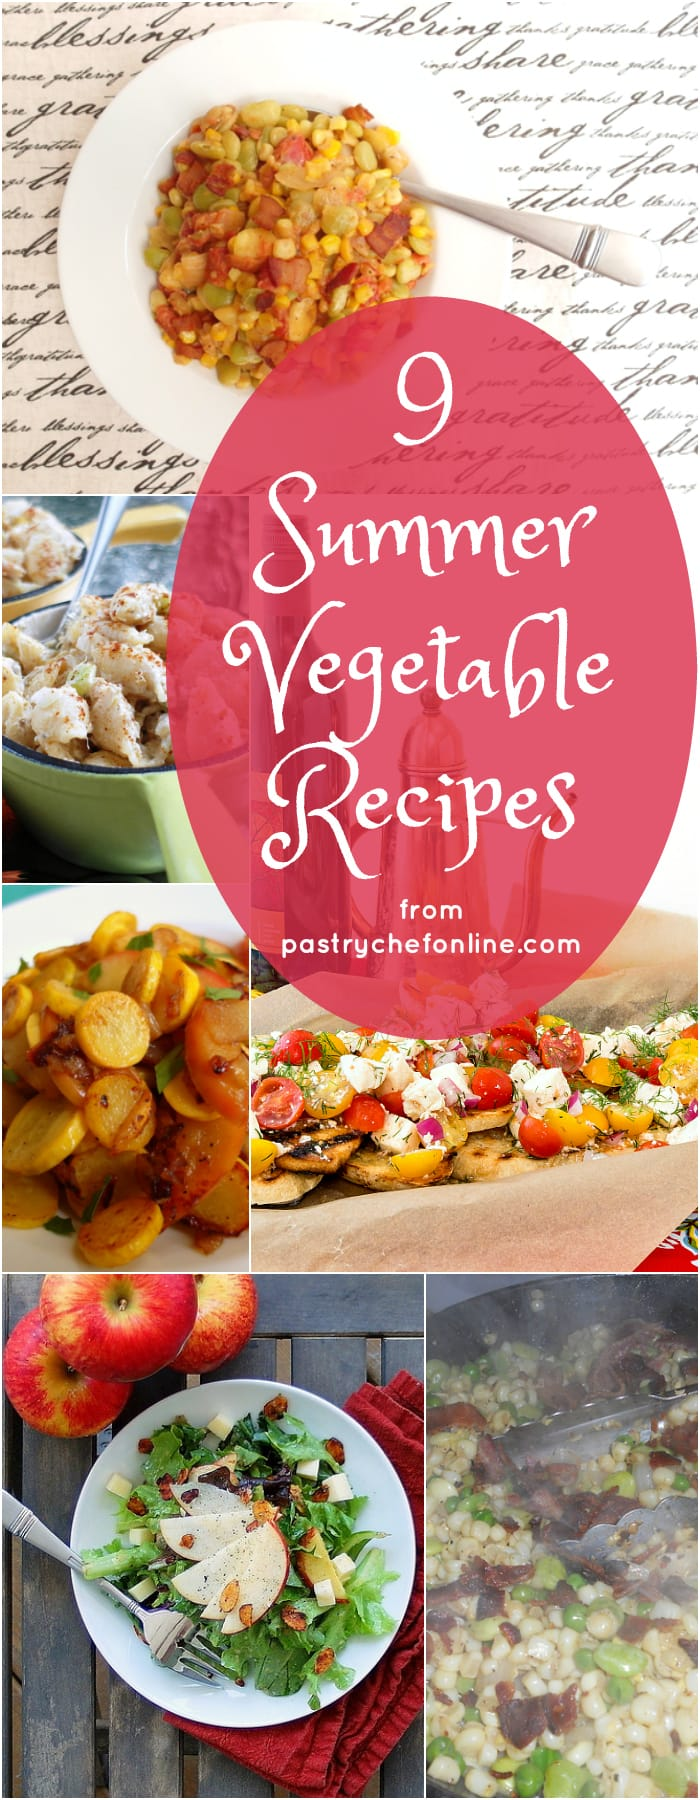 9 summer vegetable recipes from Jenni Field's Pastry Chef Online to help you use summer's bounty in delicious ways! | pastrychefonline.com